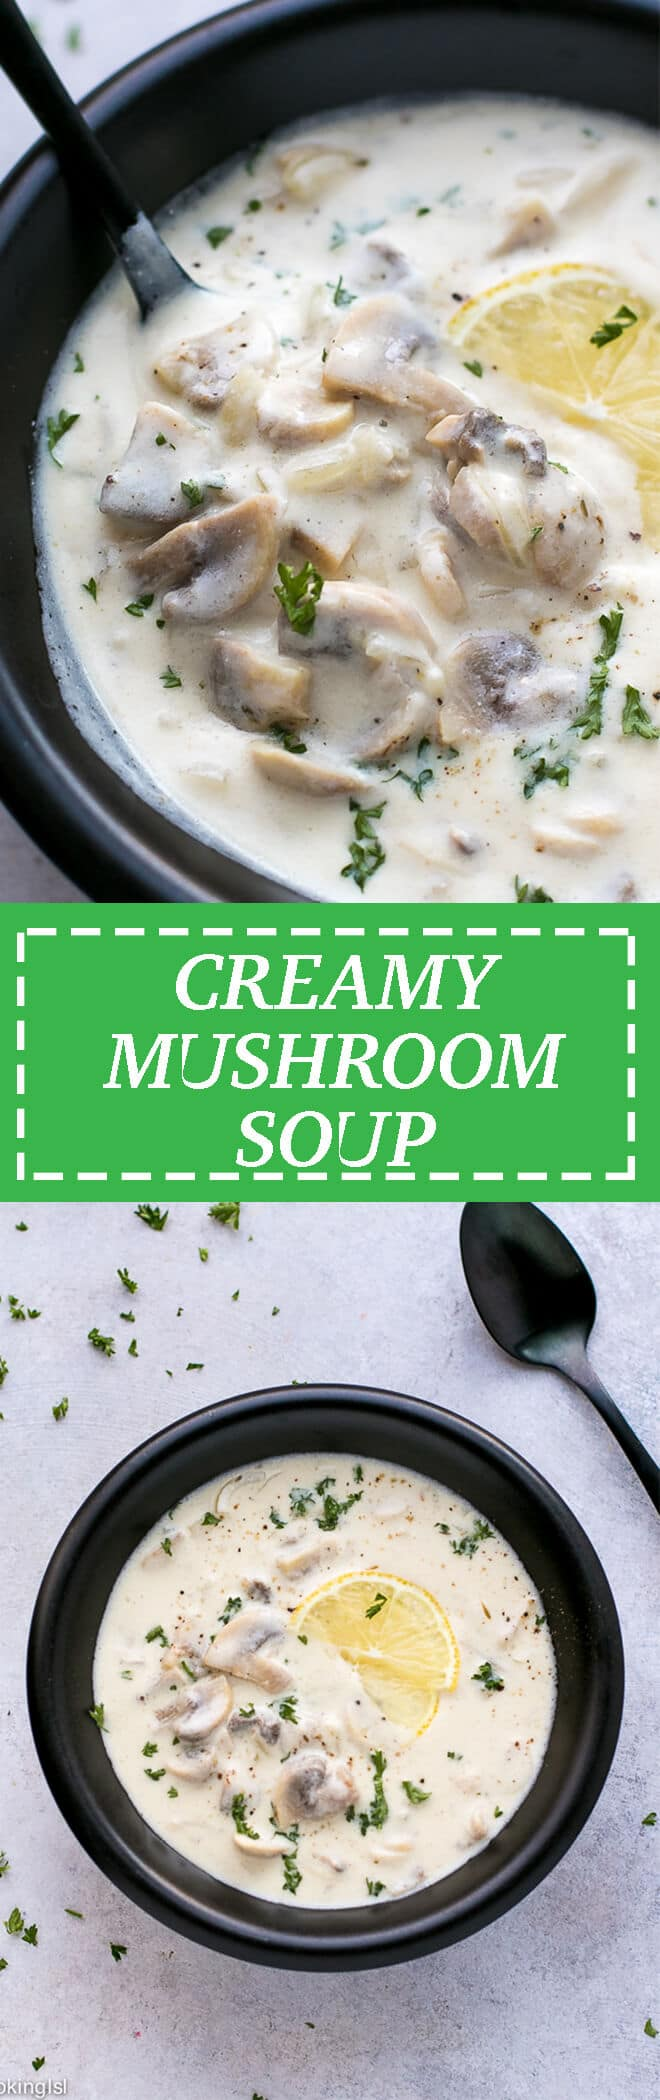 Creamy Mushroom Soup Recipe (Wolfgang Puck Copycat) - light, creamy, lemony, with tender slices of meaty mushroomy, sprinkled with fresh parsley. Easy to make, with just a few simple ingredients and ready in 30 minutes. #creamymushroomsoup #mushroomsoup #wolfgangpuck #wolfgangpuckmushroomsoup